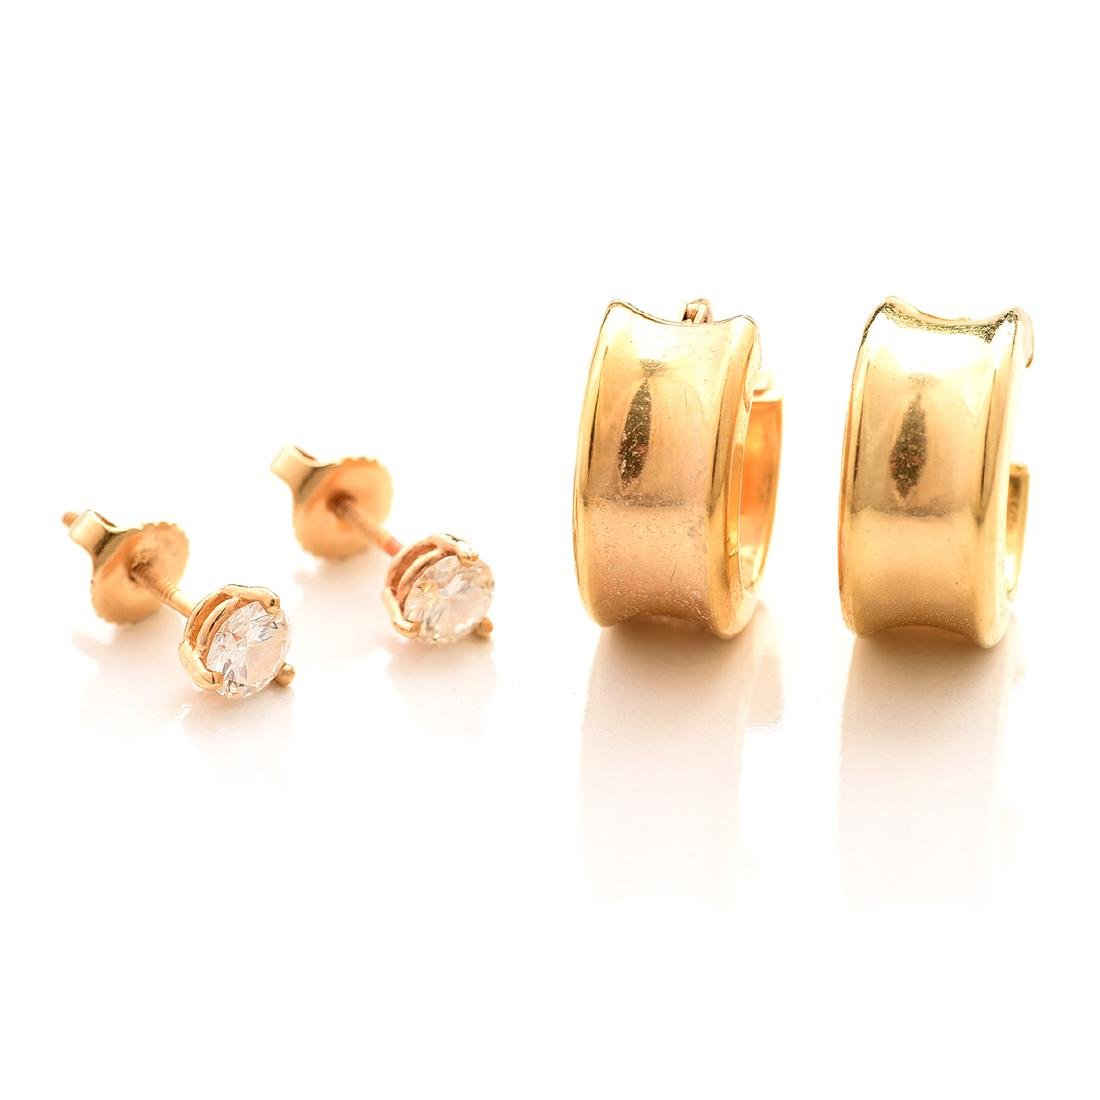 Collection of Diamond, 14k Gold Earrings.